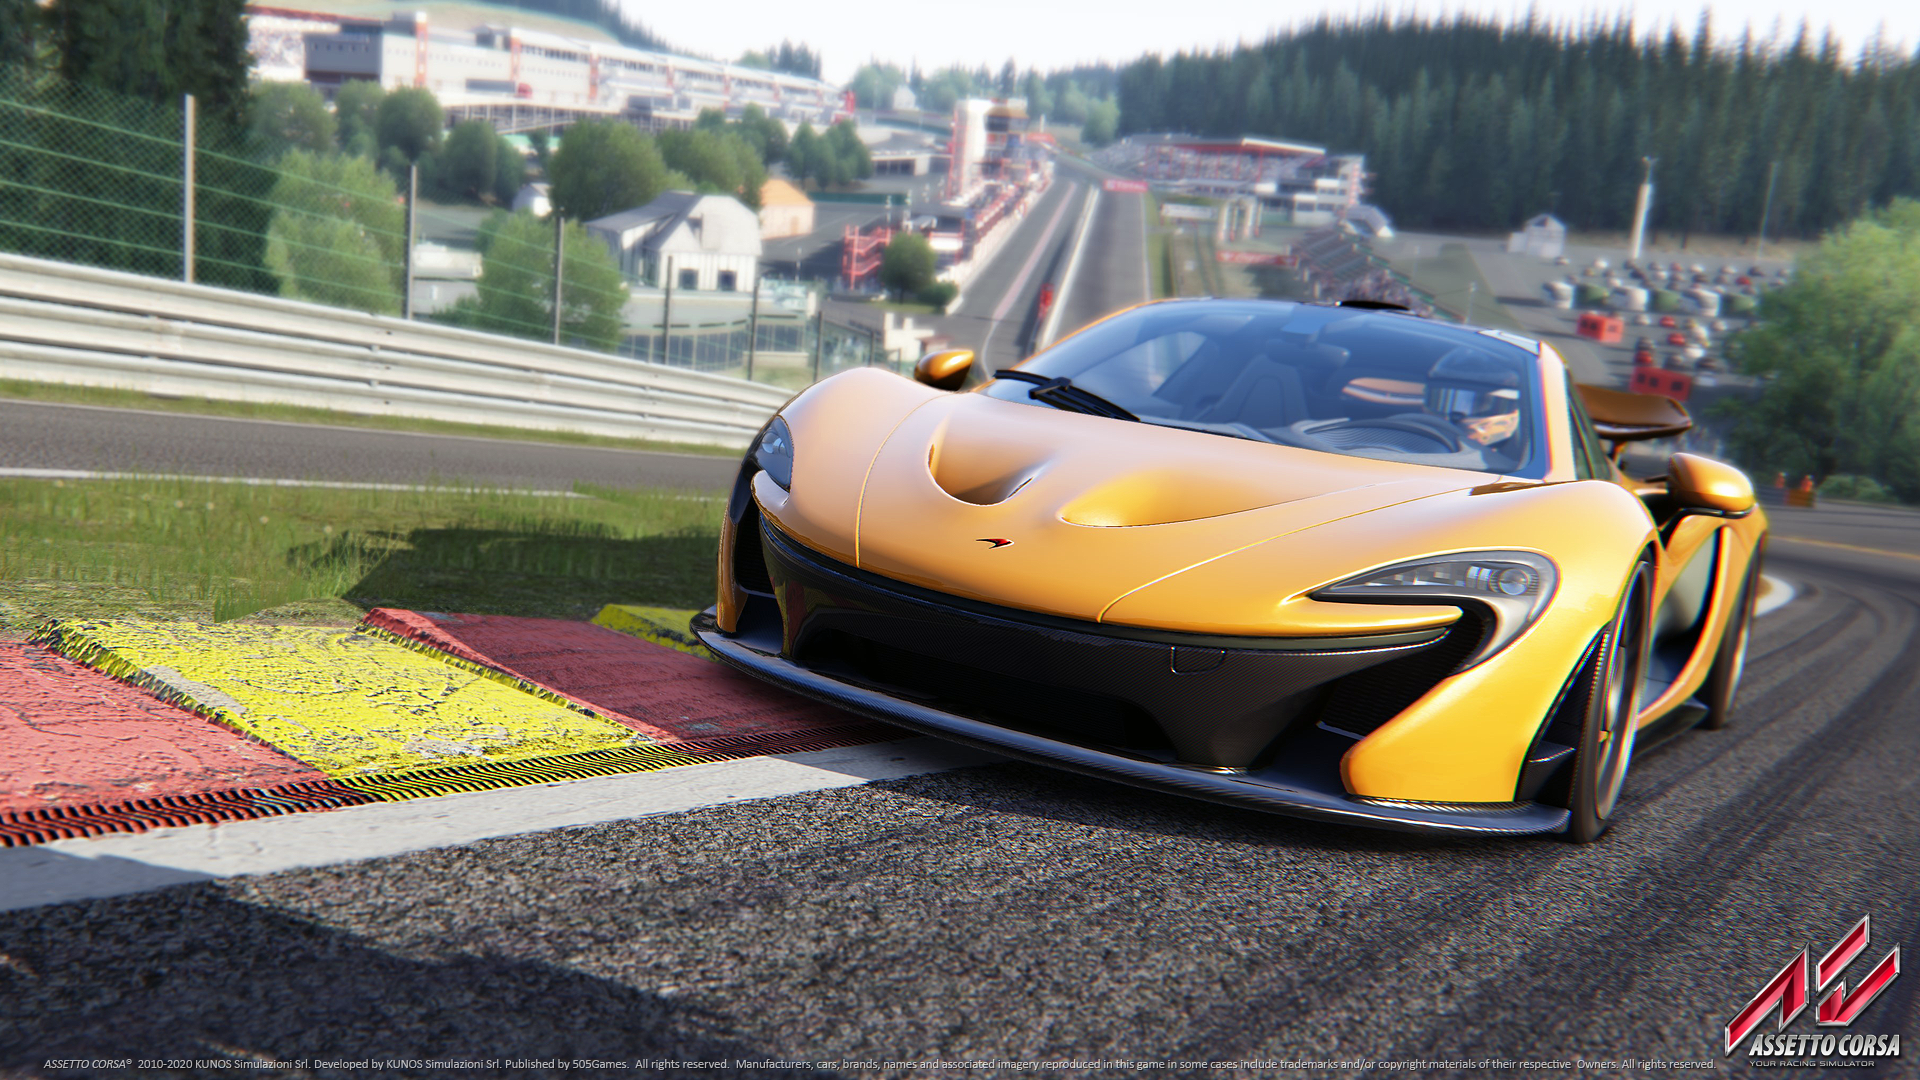 If want realistic racing on PC there are only two options: <em>iRacing</em> or <em>Assetto Corsa</em>.